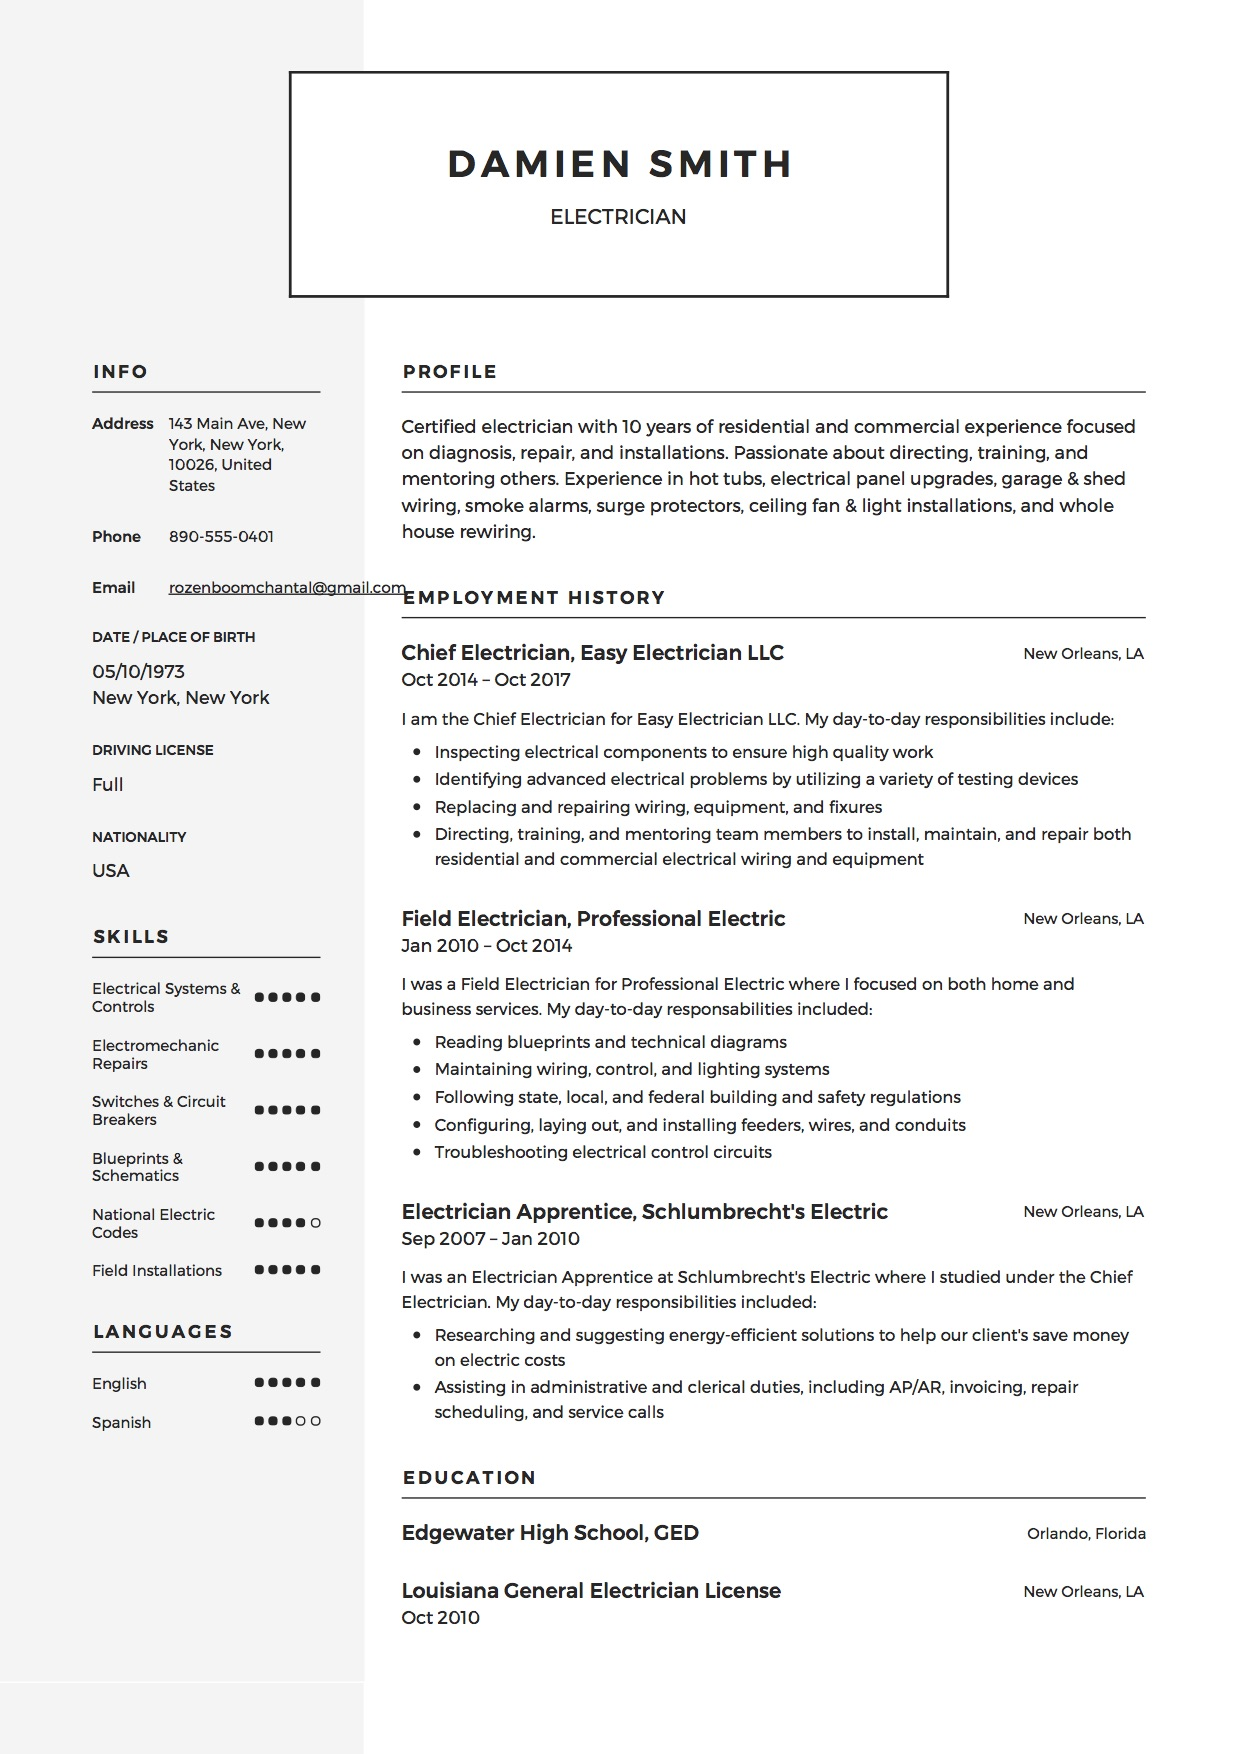 resume templates for electricians 12x free electrician resume template 24442 | Electrician Resume Example